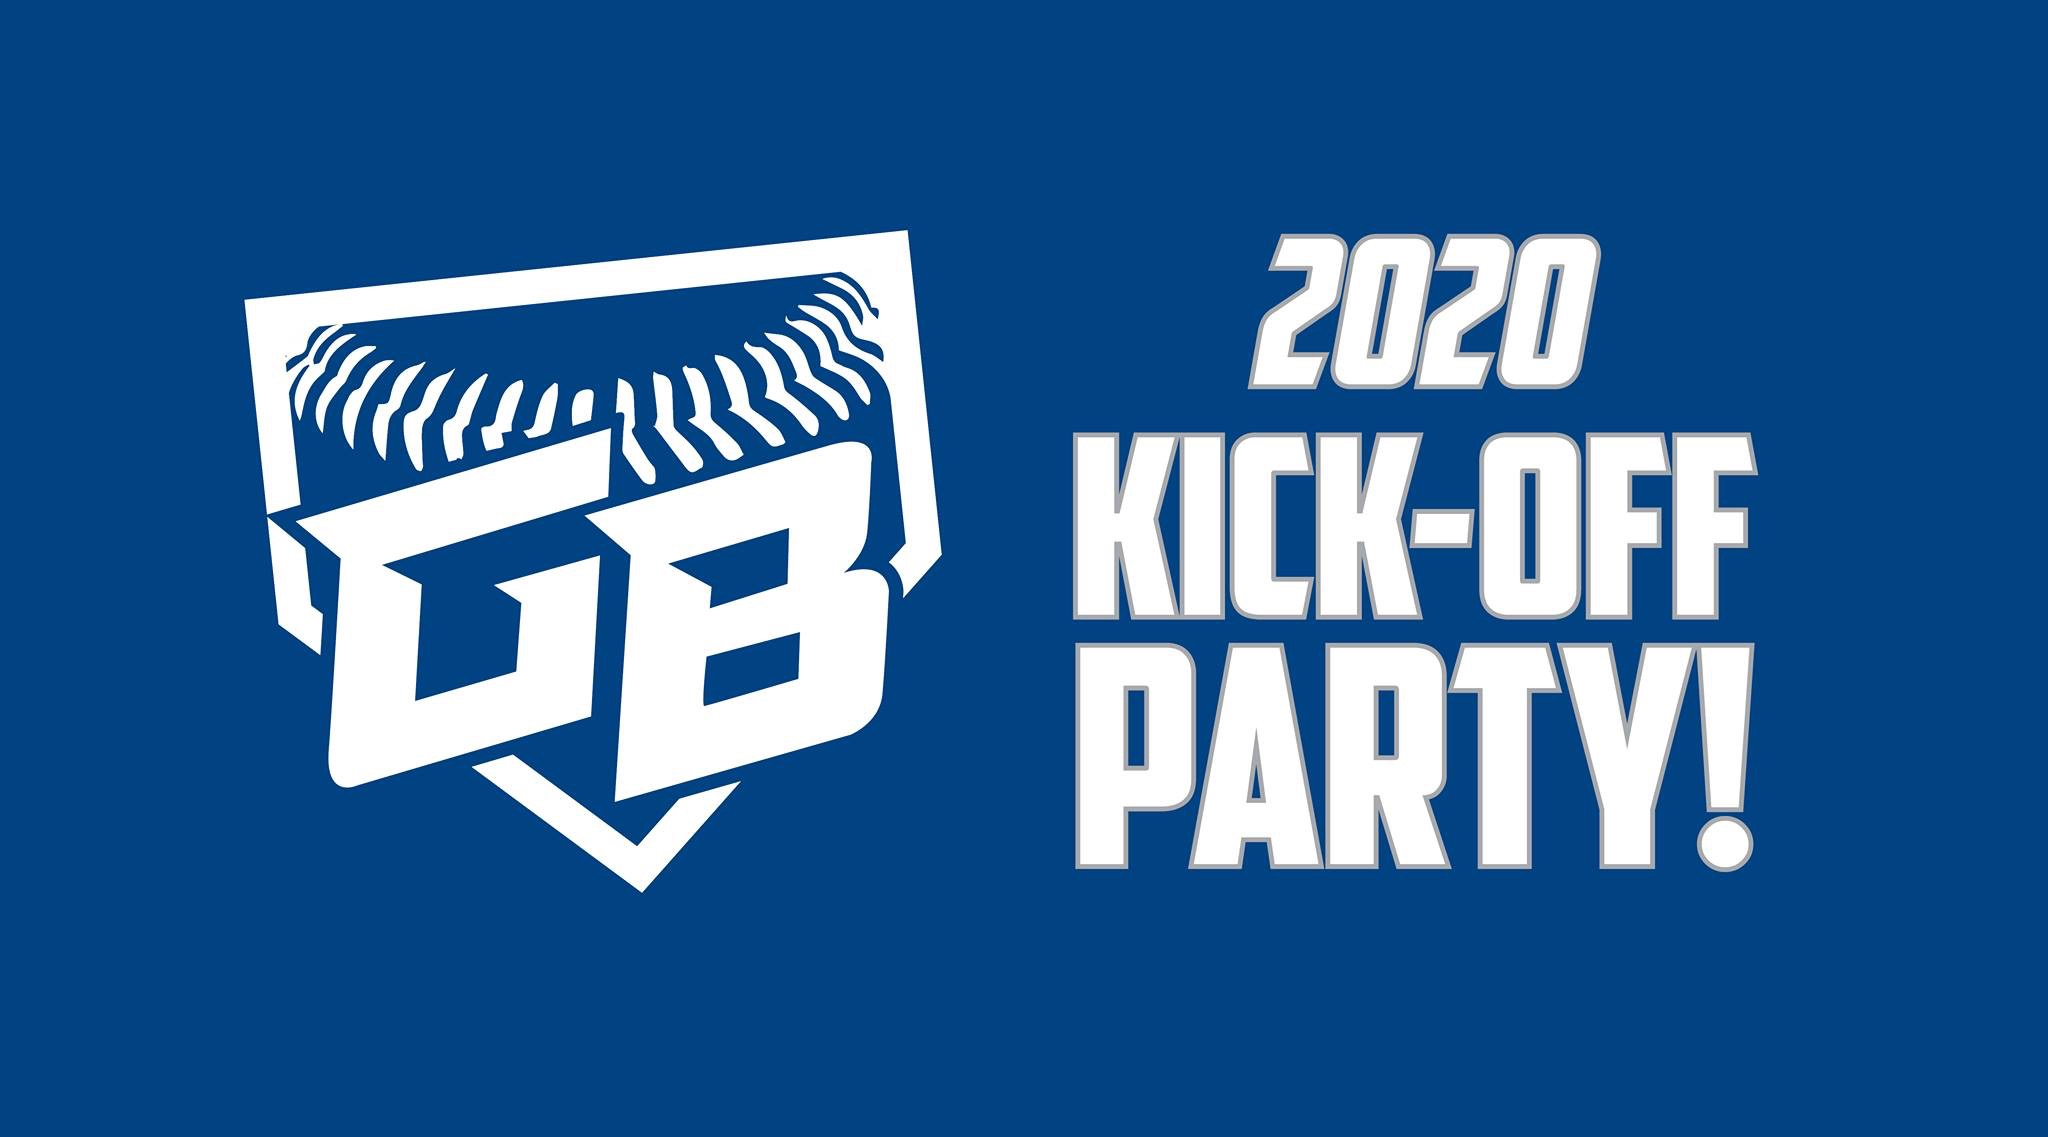 GBYBS Kick Off Party